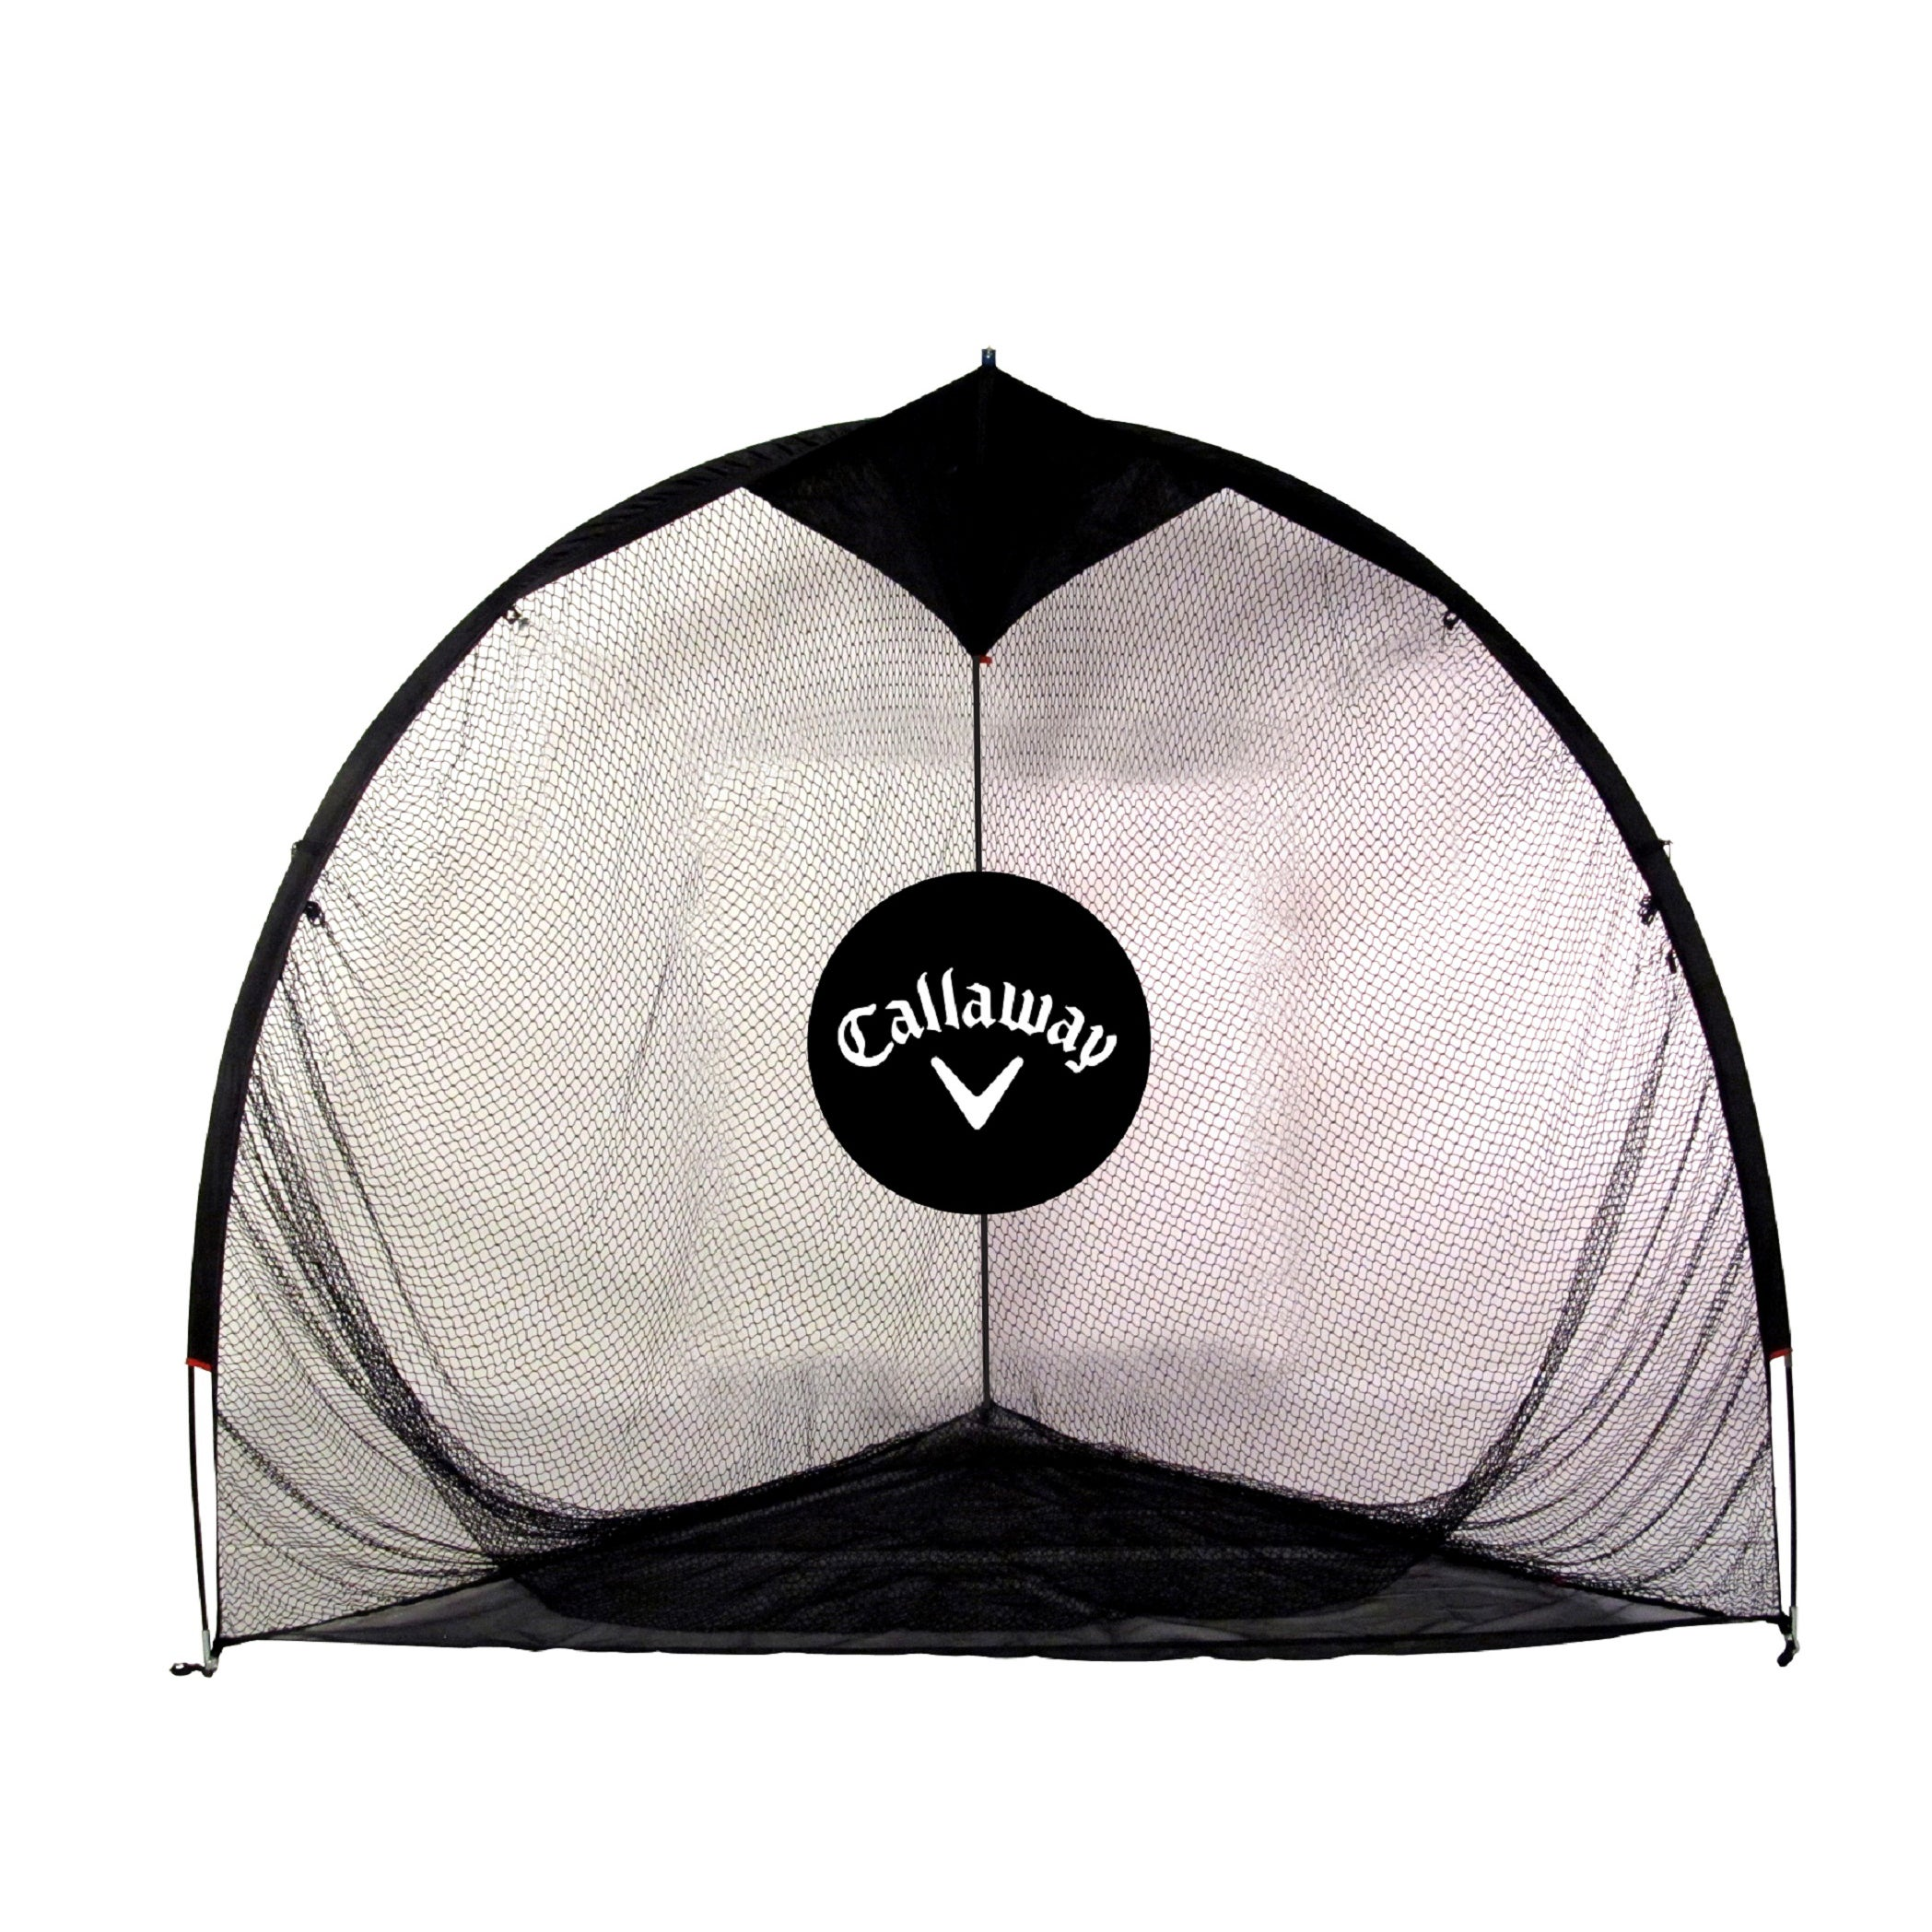 Callaway Tri-Ball 6-foot Net